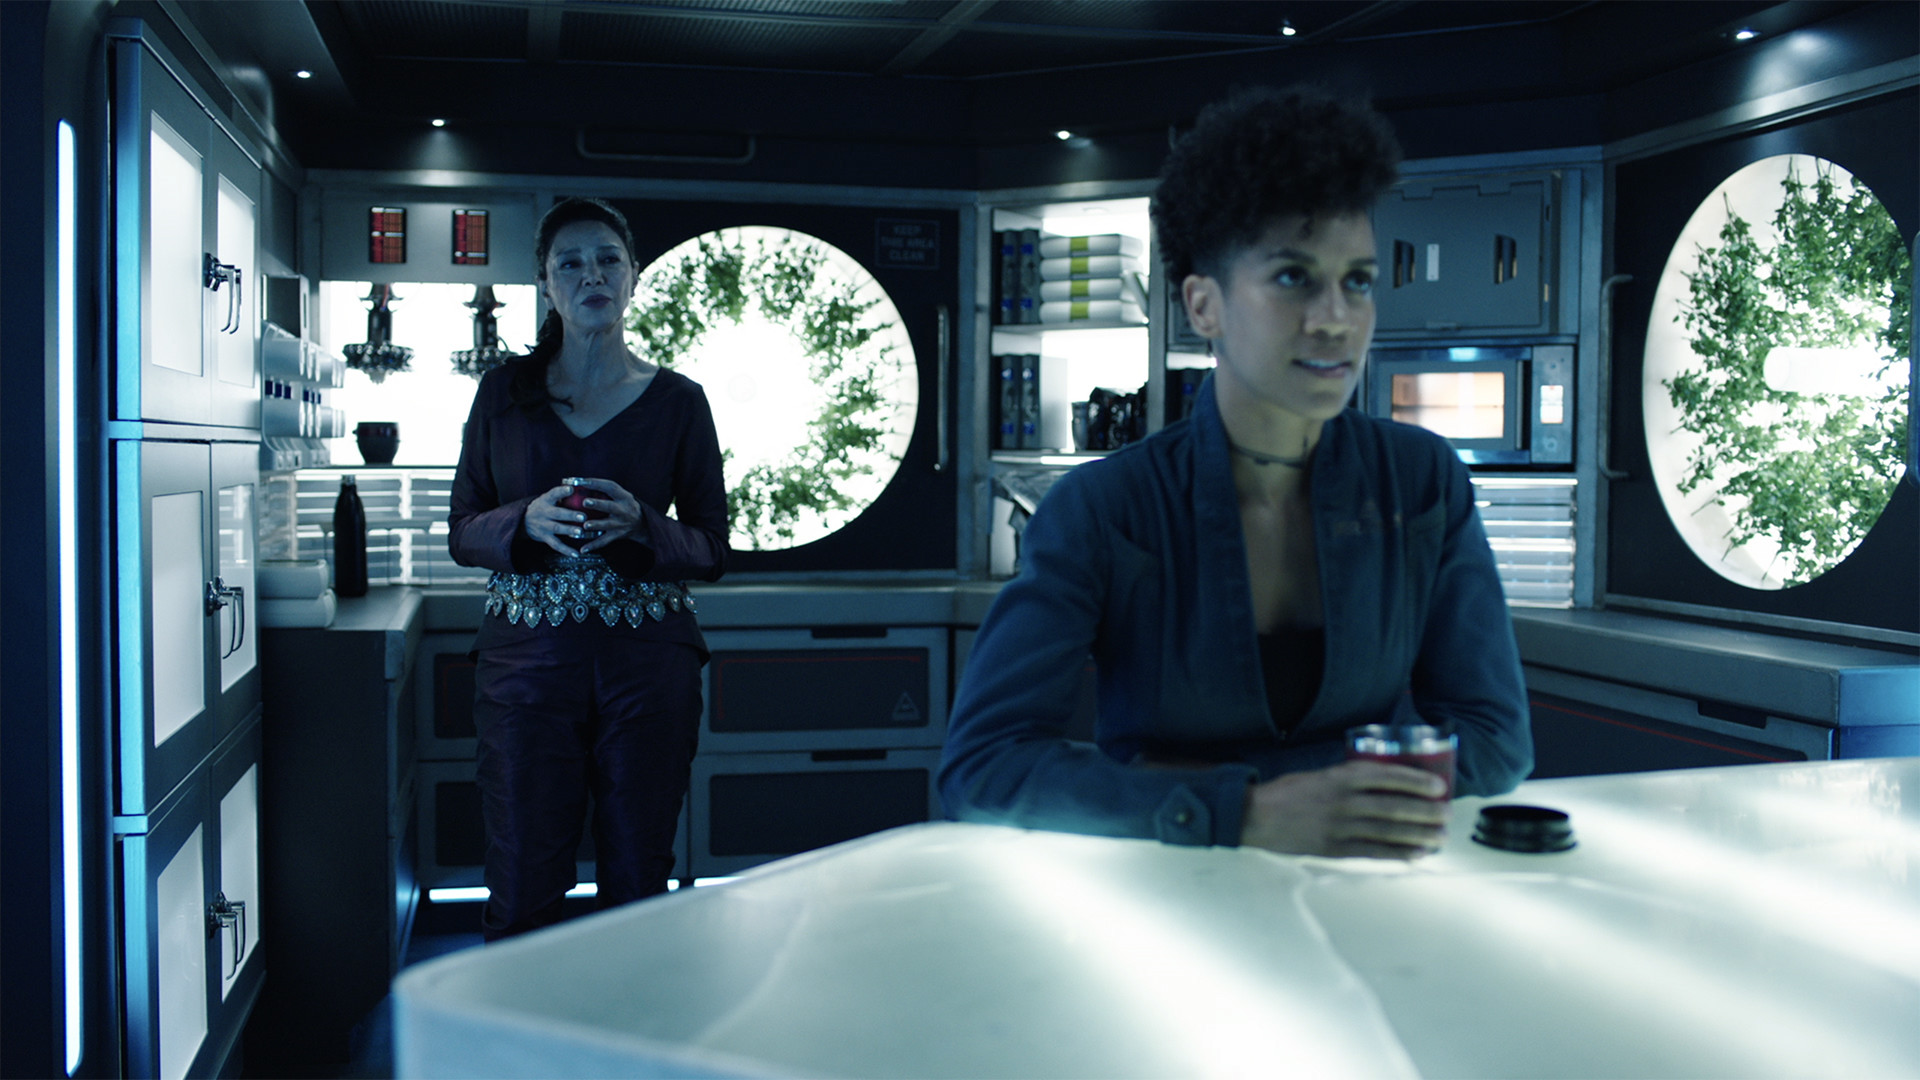 theexpanse_10thoughts_episode303_4.jpg